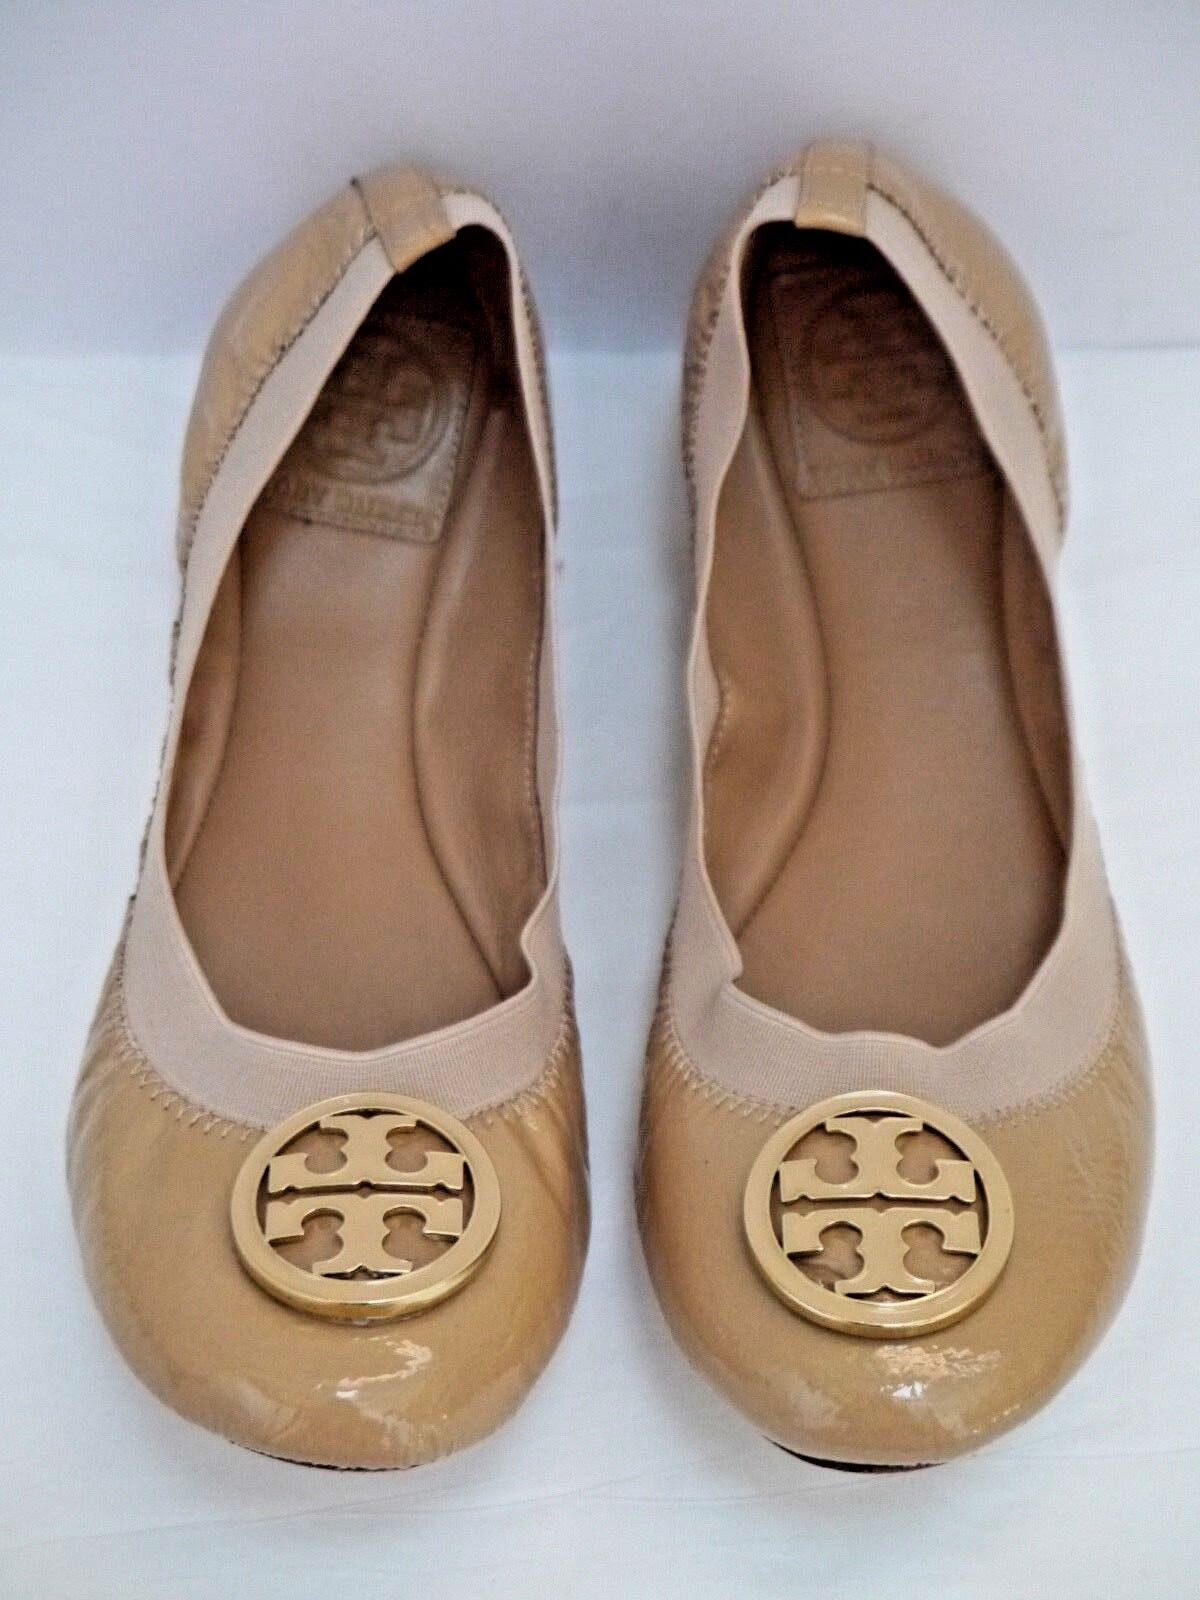 TORY BURCH Caroline nude patent leather logo toe detail ballet flats 8 WORN ONCE